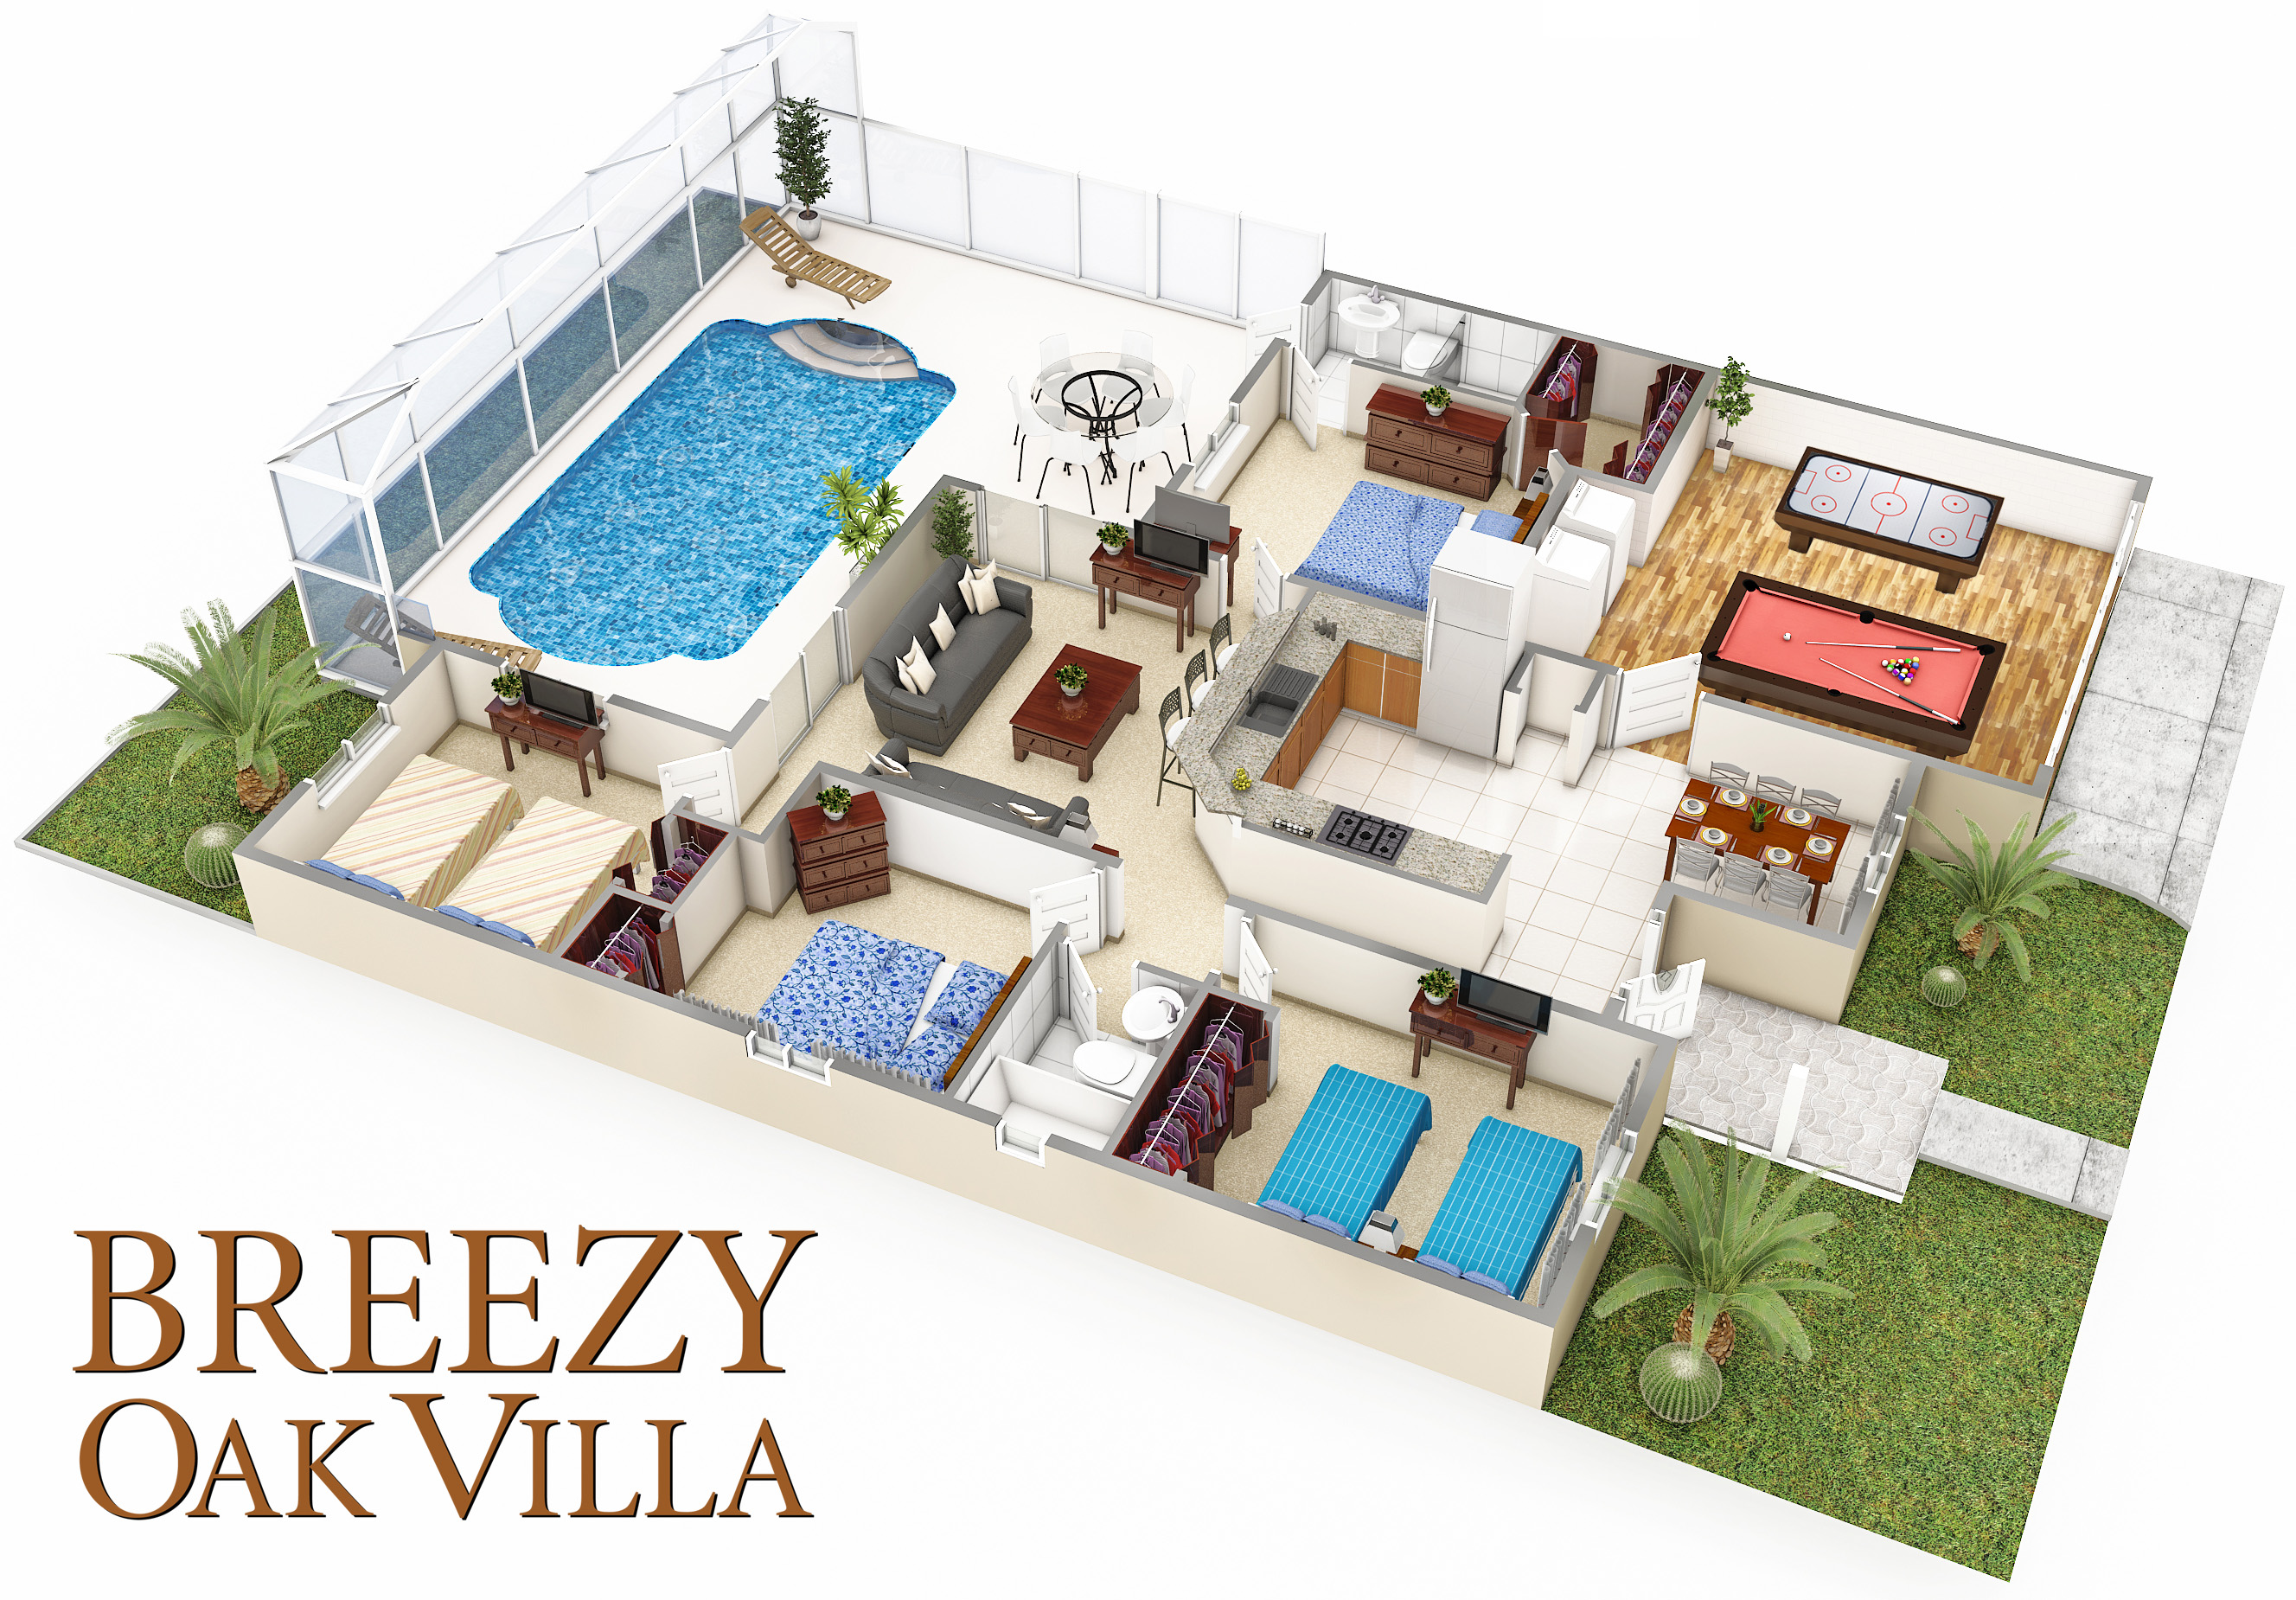 Breezy Oak Villa